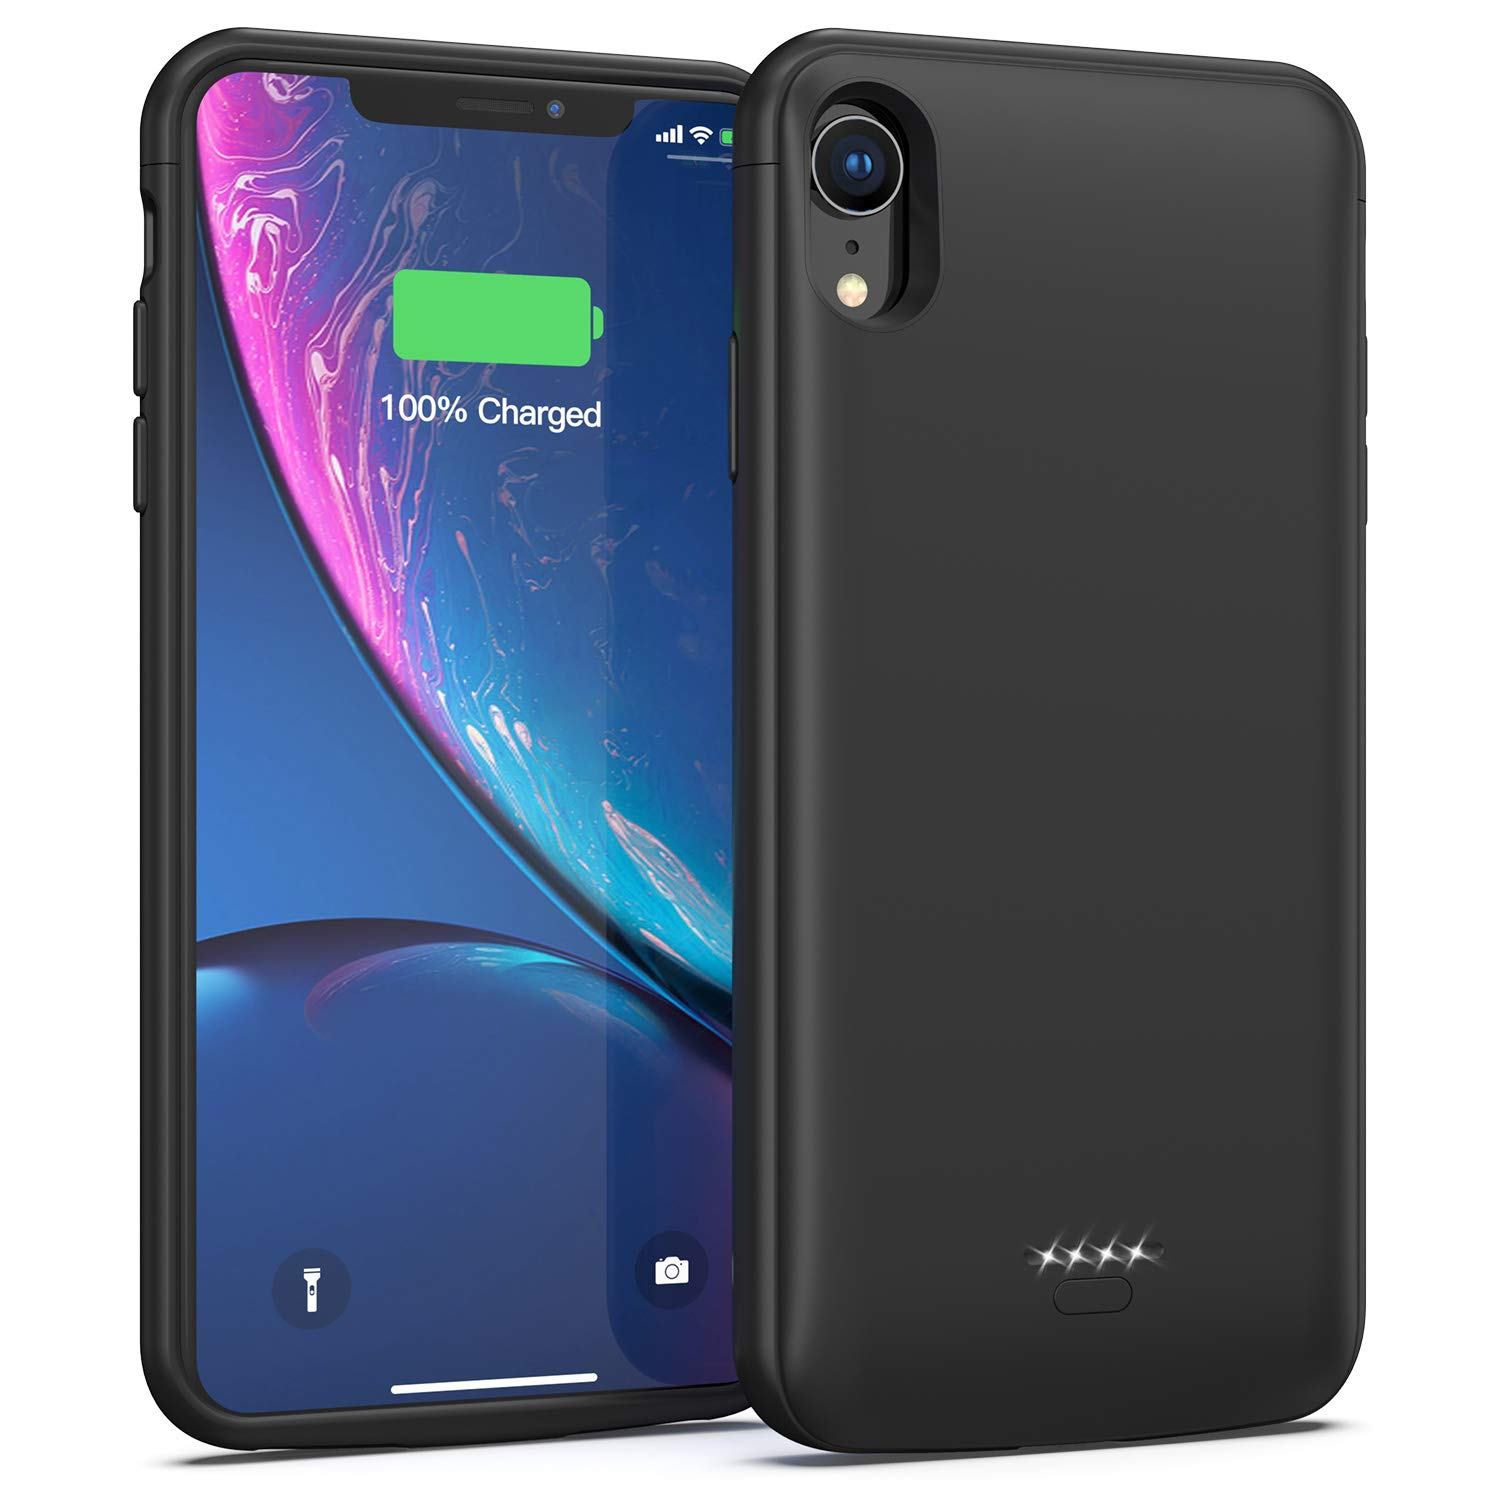 Battery Case for iPhone XR, 5000mAh Portable Charging Case Protective Extended Battery Charger Case Compatible with iPhone XR (Black) Lonlif XDL-613M